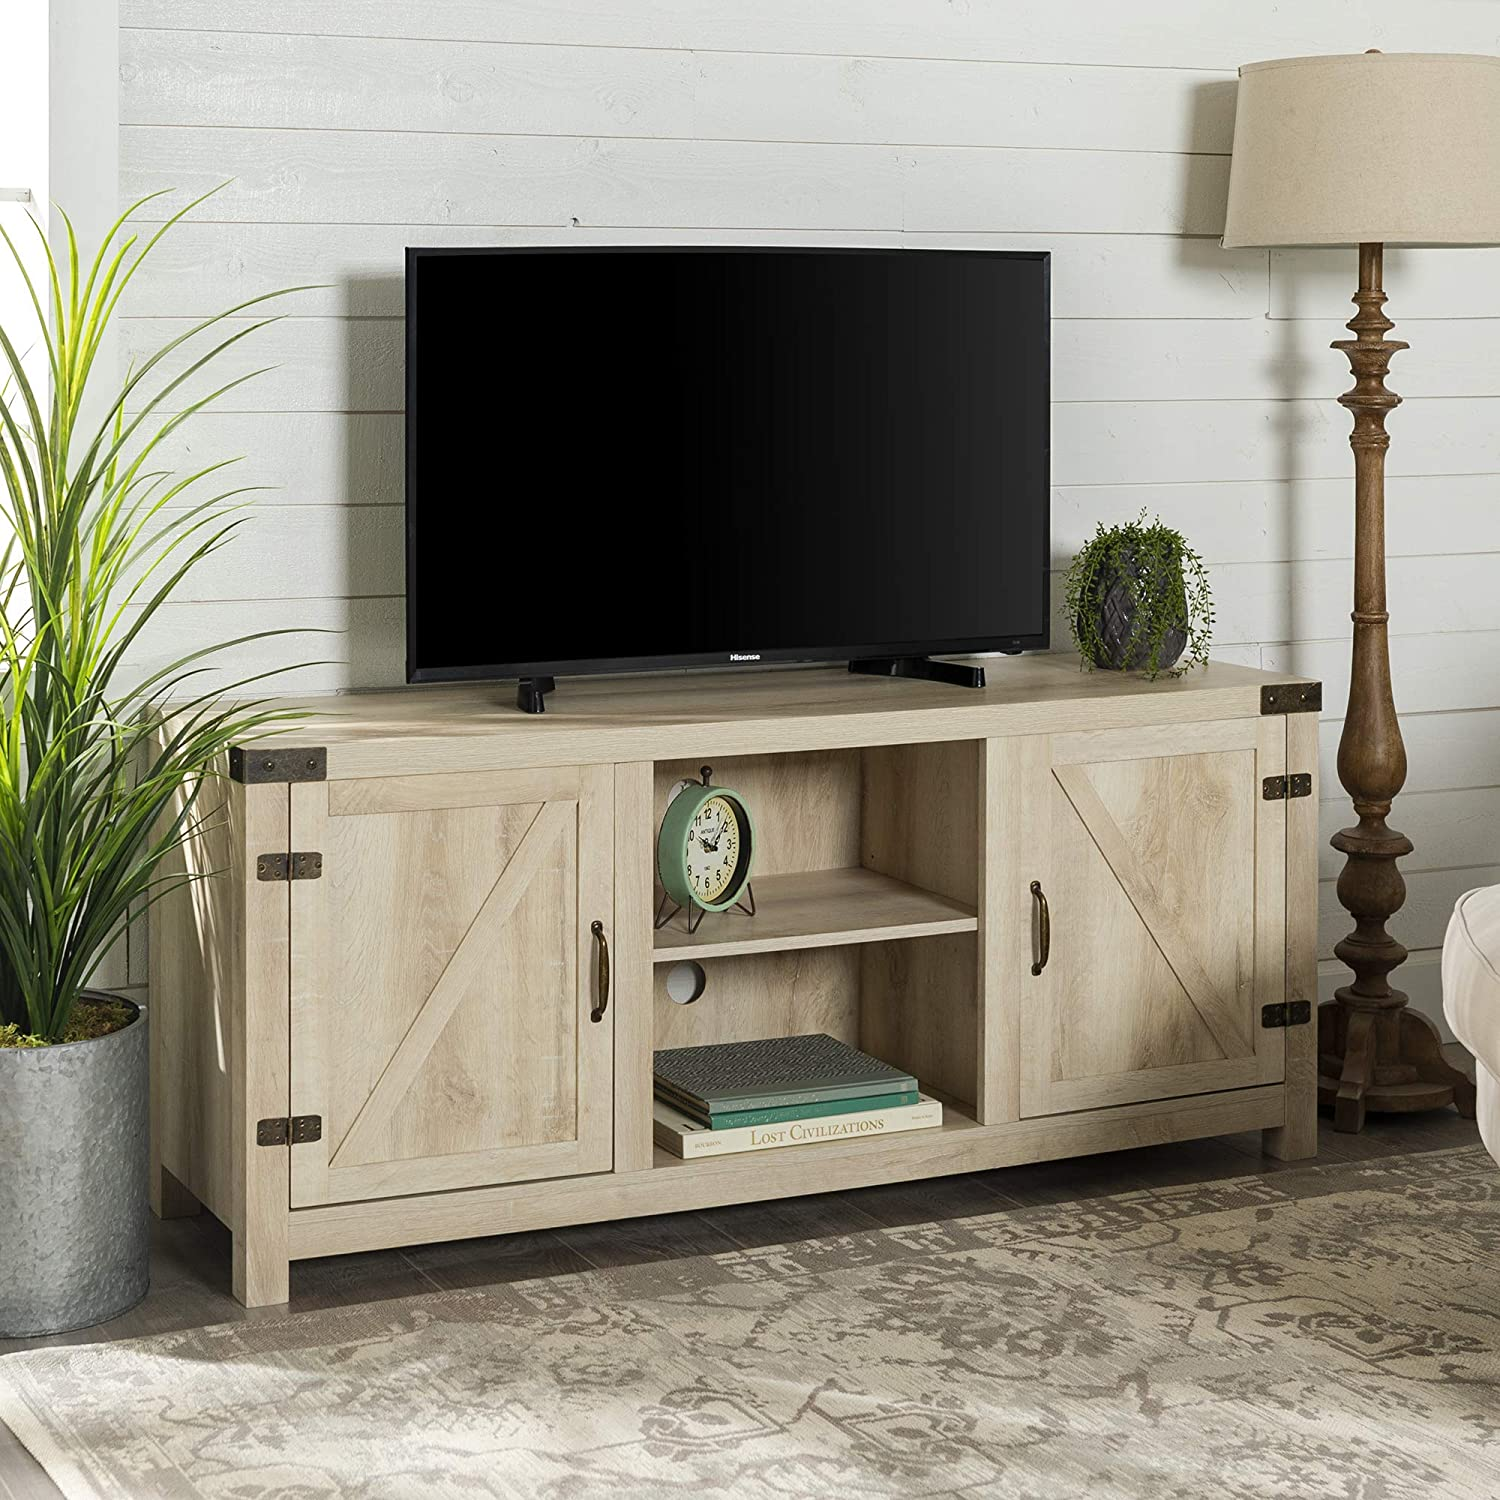 Modern Farmhouse Double Barn Door TV Stand